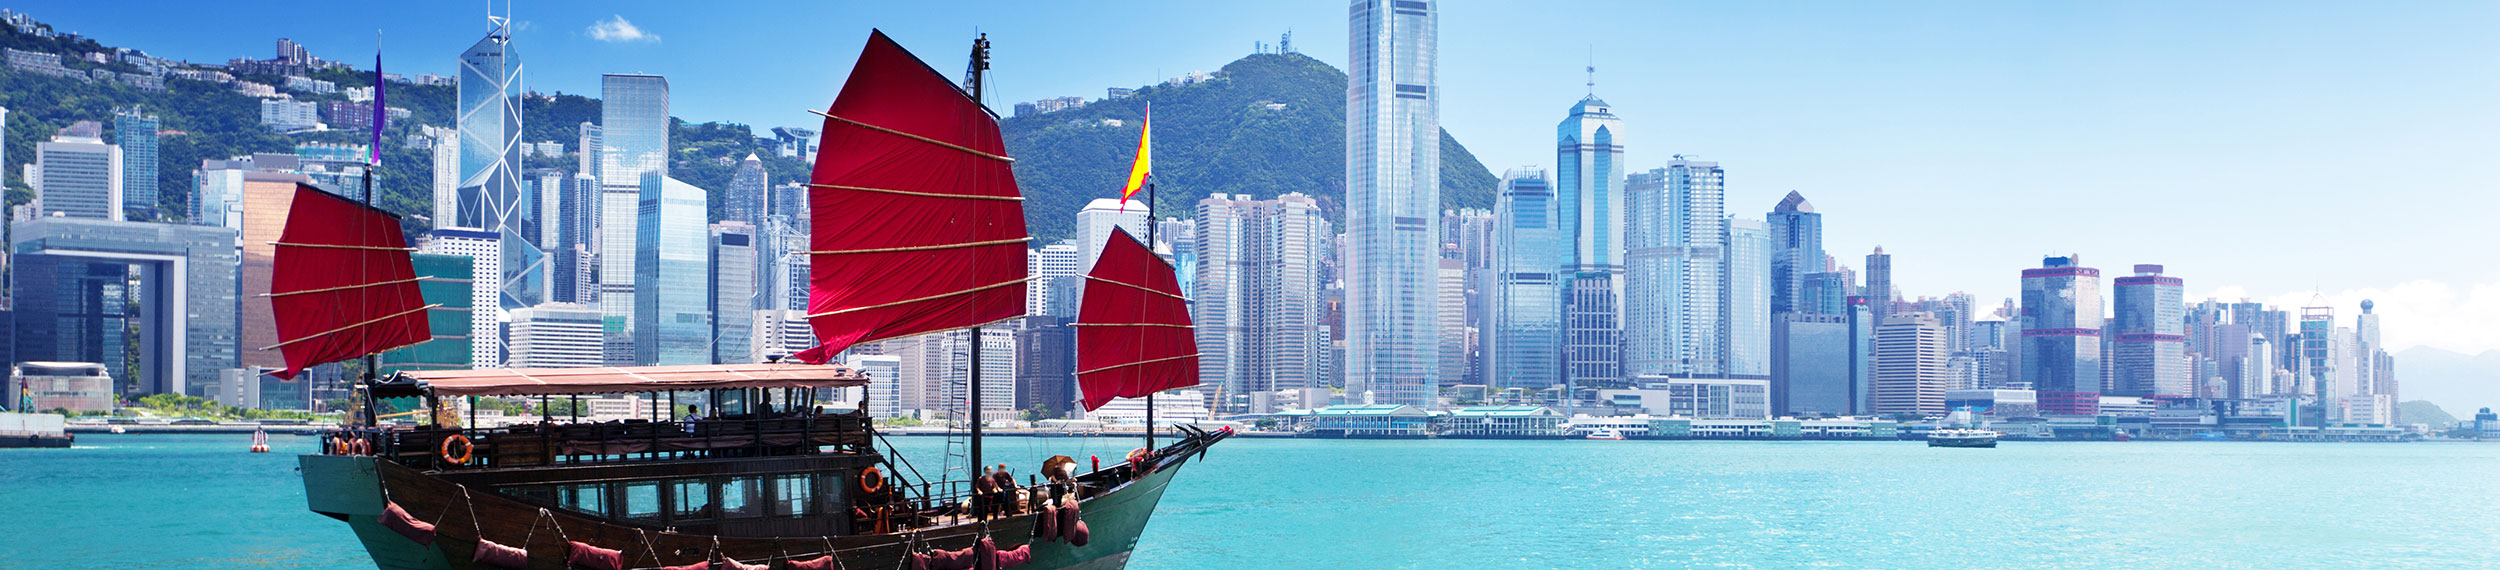 A traditional Chinese junk ship with square red sails glides through the turquoise water with a buildings and blue sky in the background.